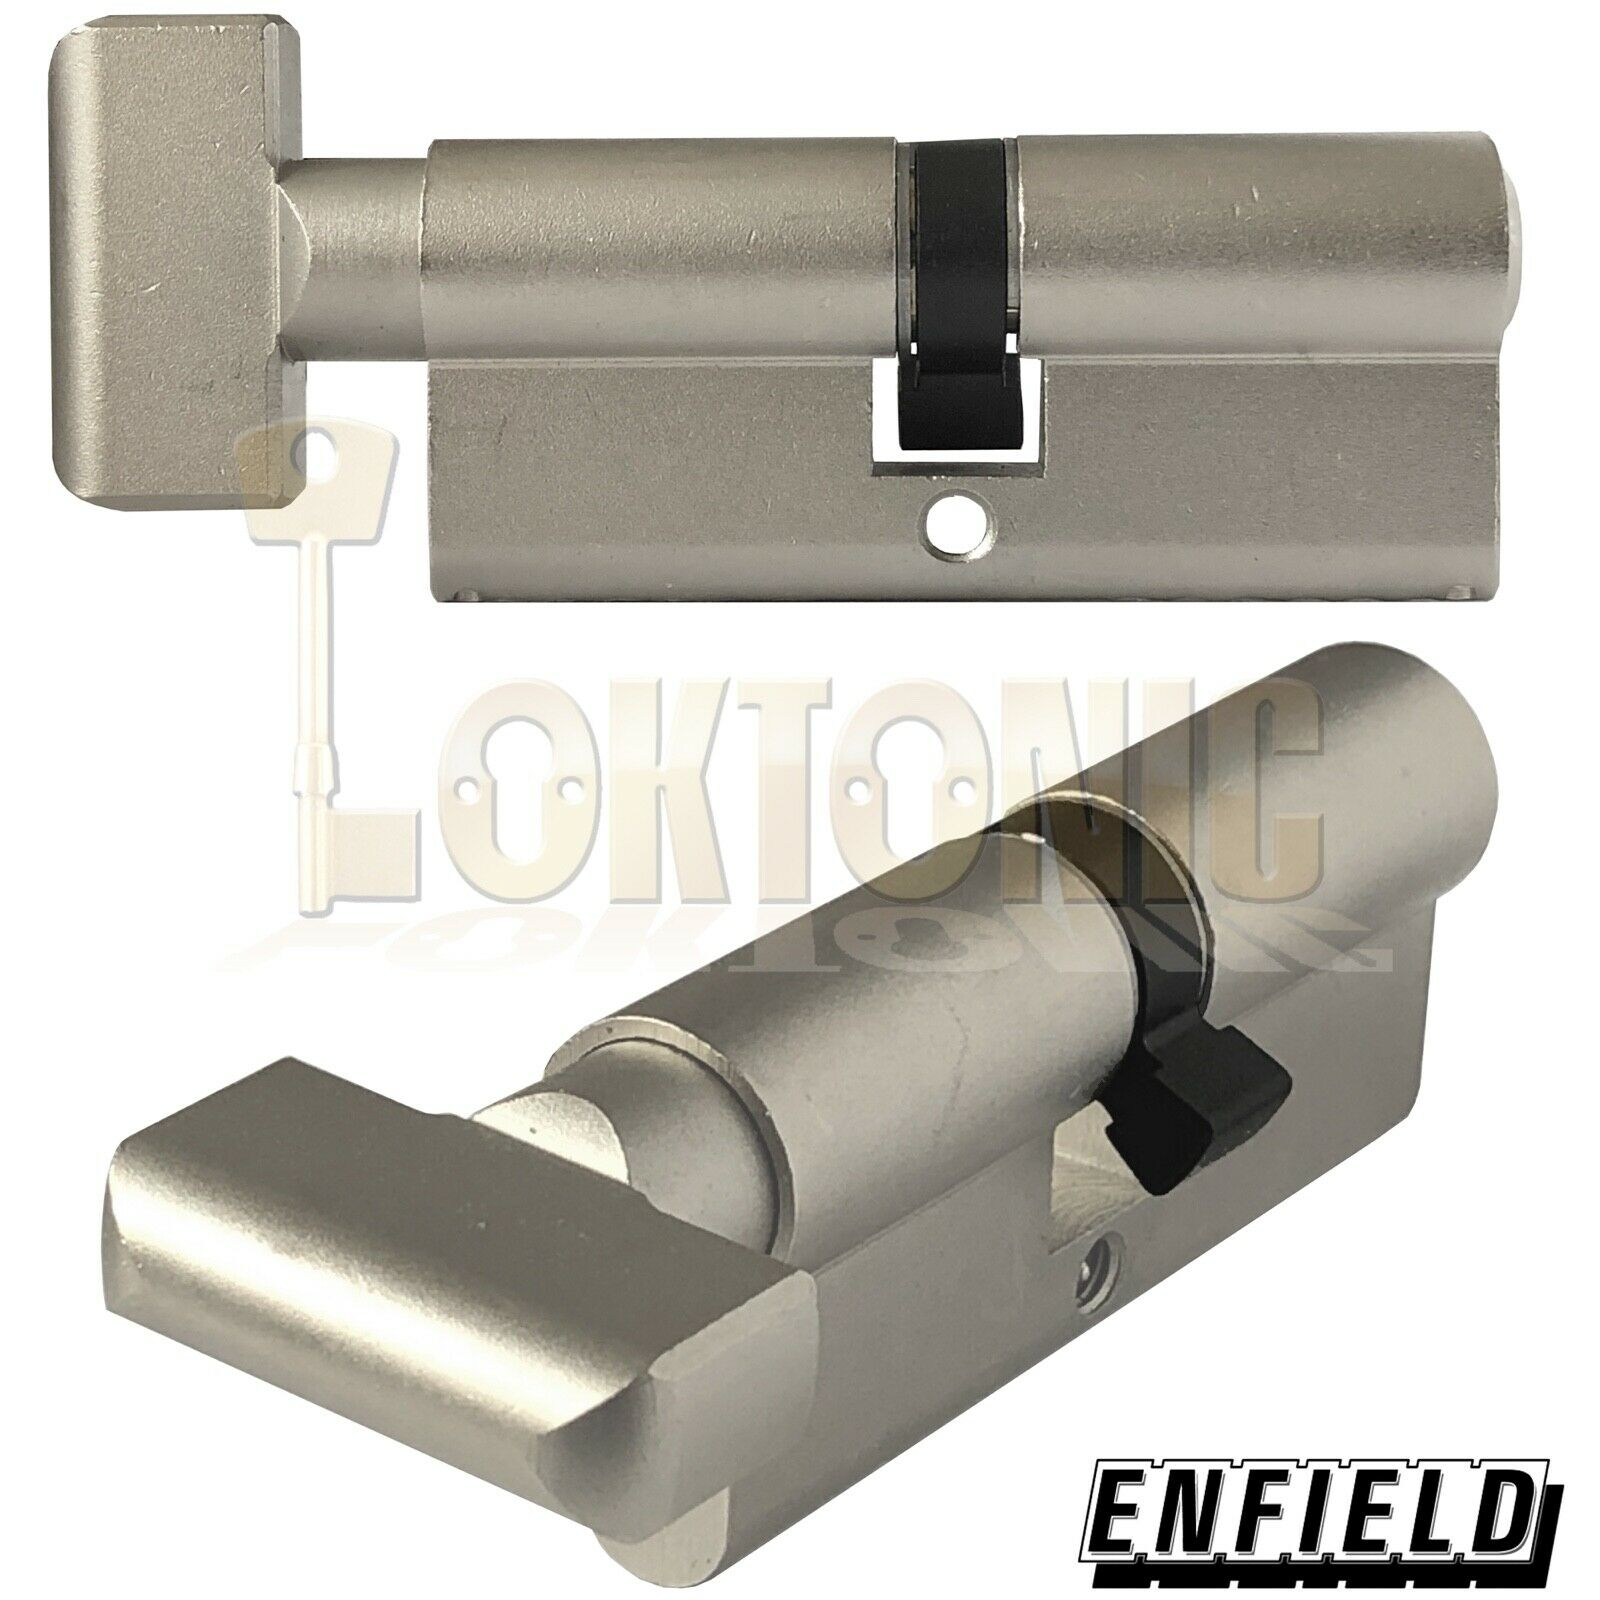 Enfield 70mm Knob Turn Euro High Security Cylinder Anti Drill Bump Locks Barrel